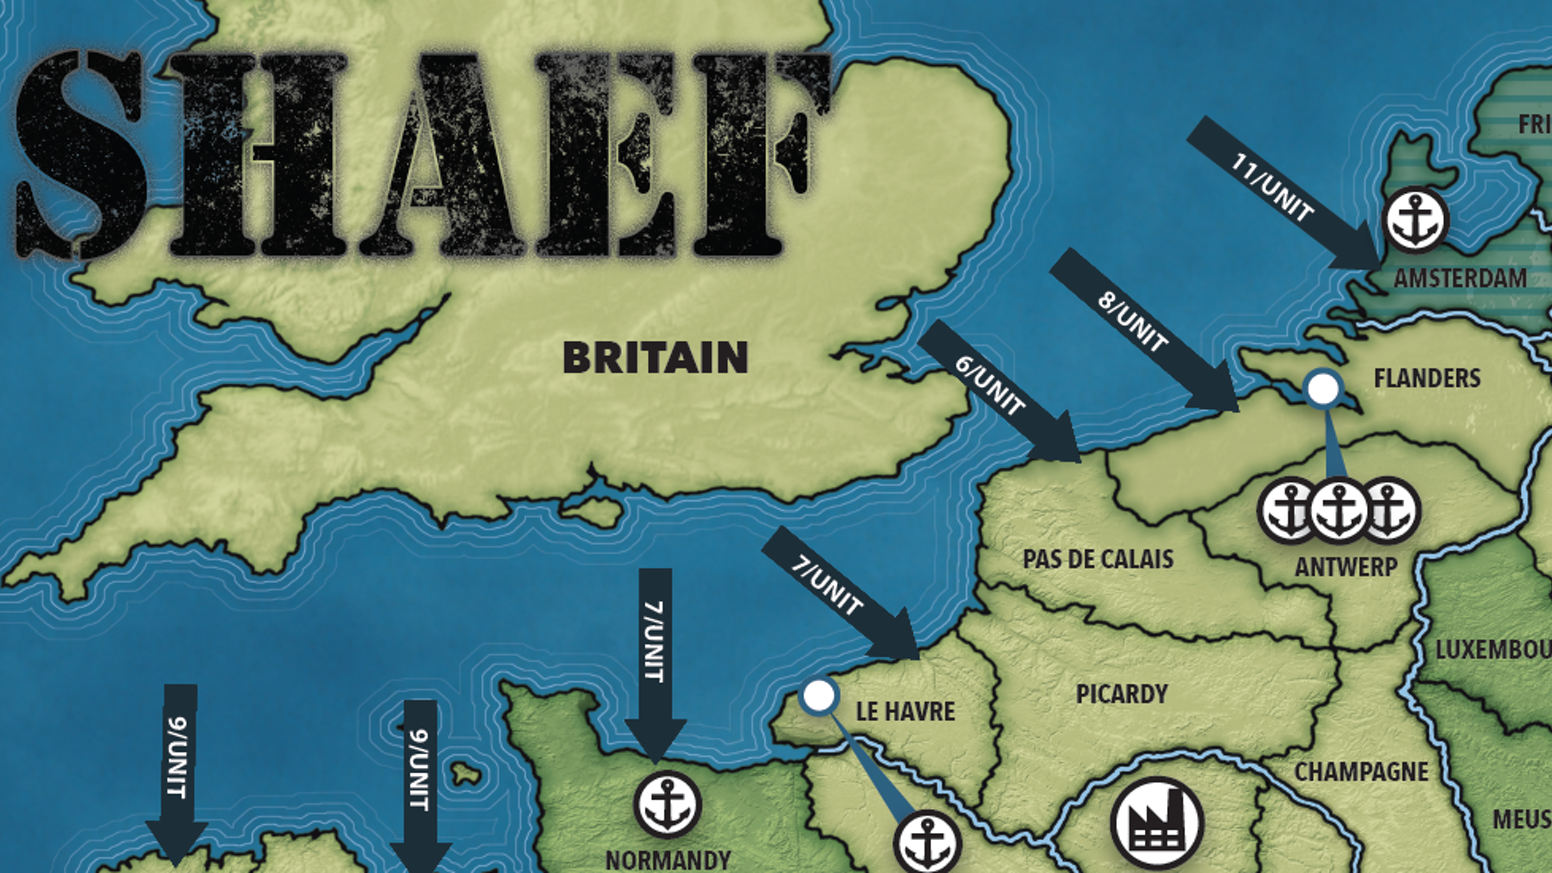 Ian brodys shaef world war 2 board game by will townshend psc a two player card driven world war ii strategy game covering the period gumiabroncs Gallery